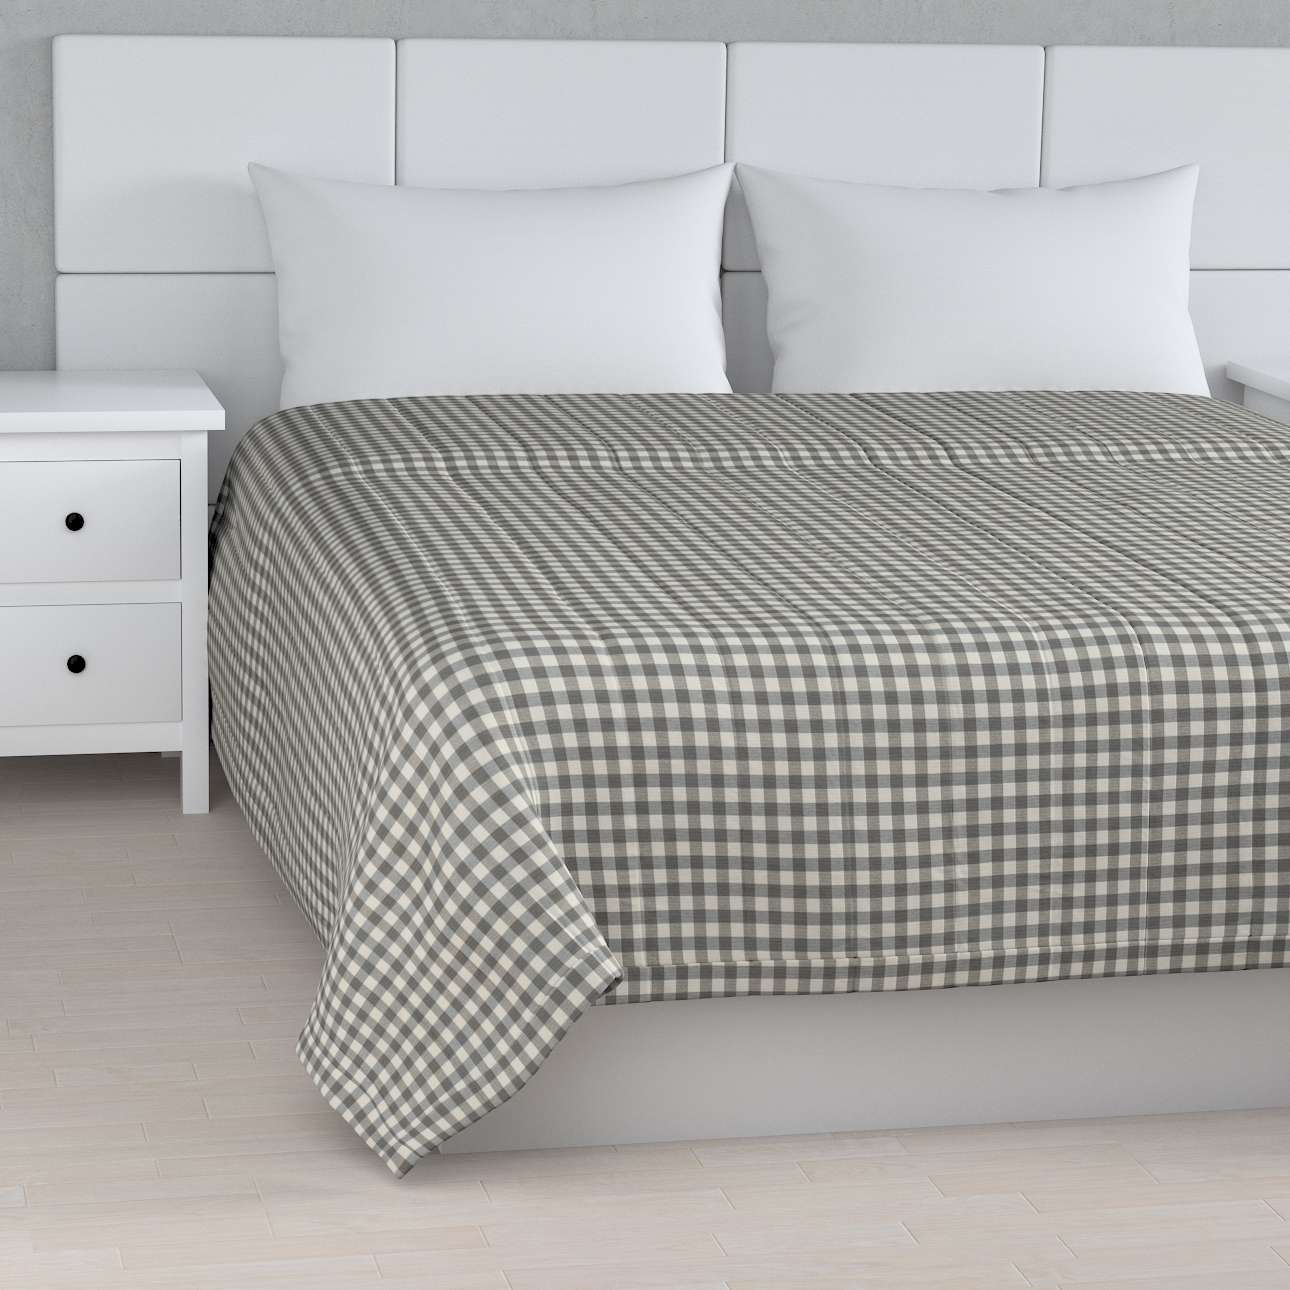 Stripe quilted throw 260 × 210 cm (102 × 83 inch) in collection Quadro, fabric: 136-11